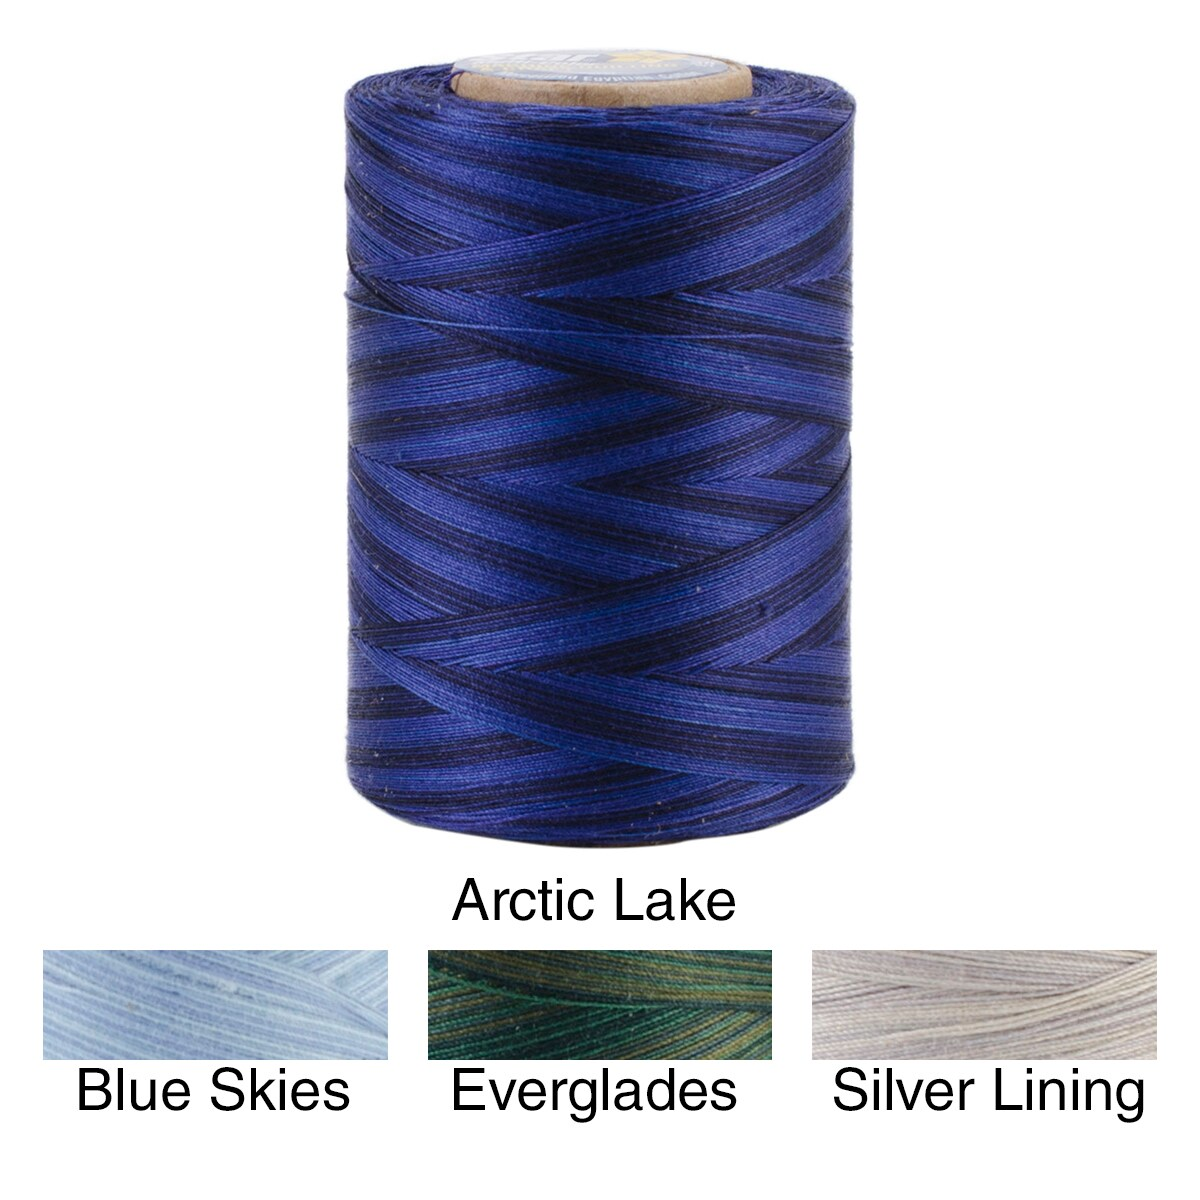 Coats and Clarks Star Mercerized Cotton Thread Variegated...